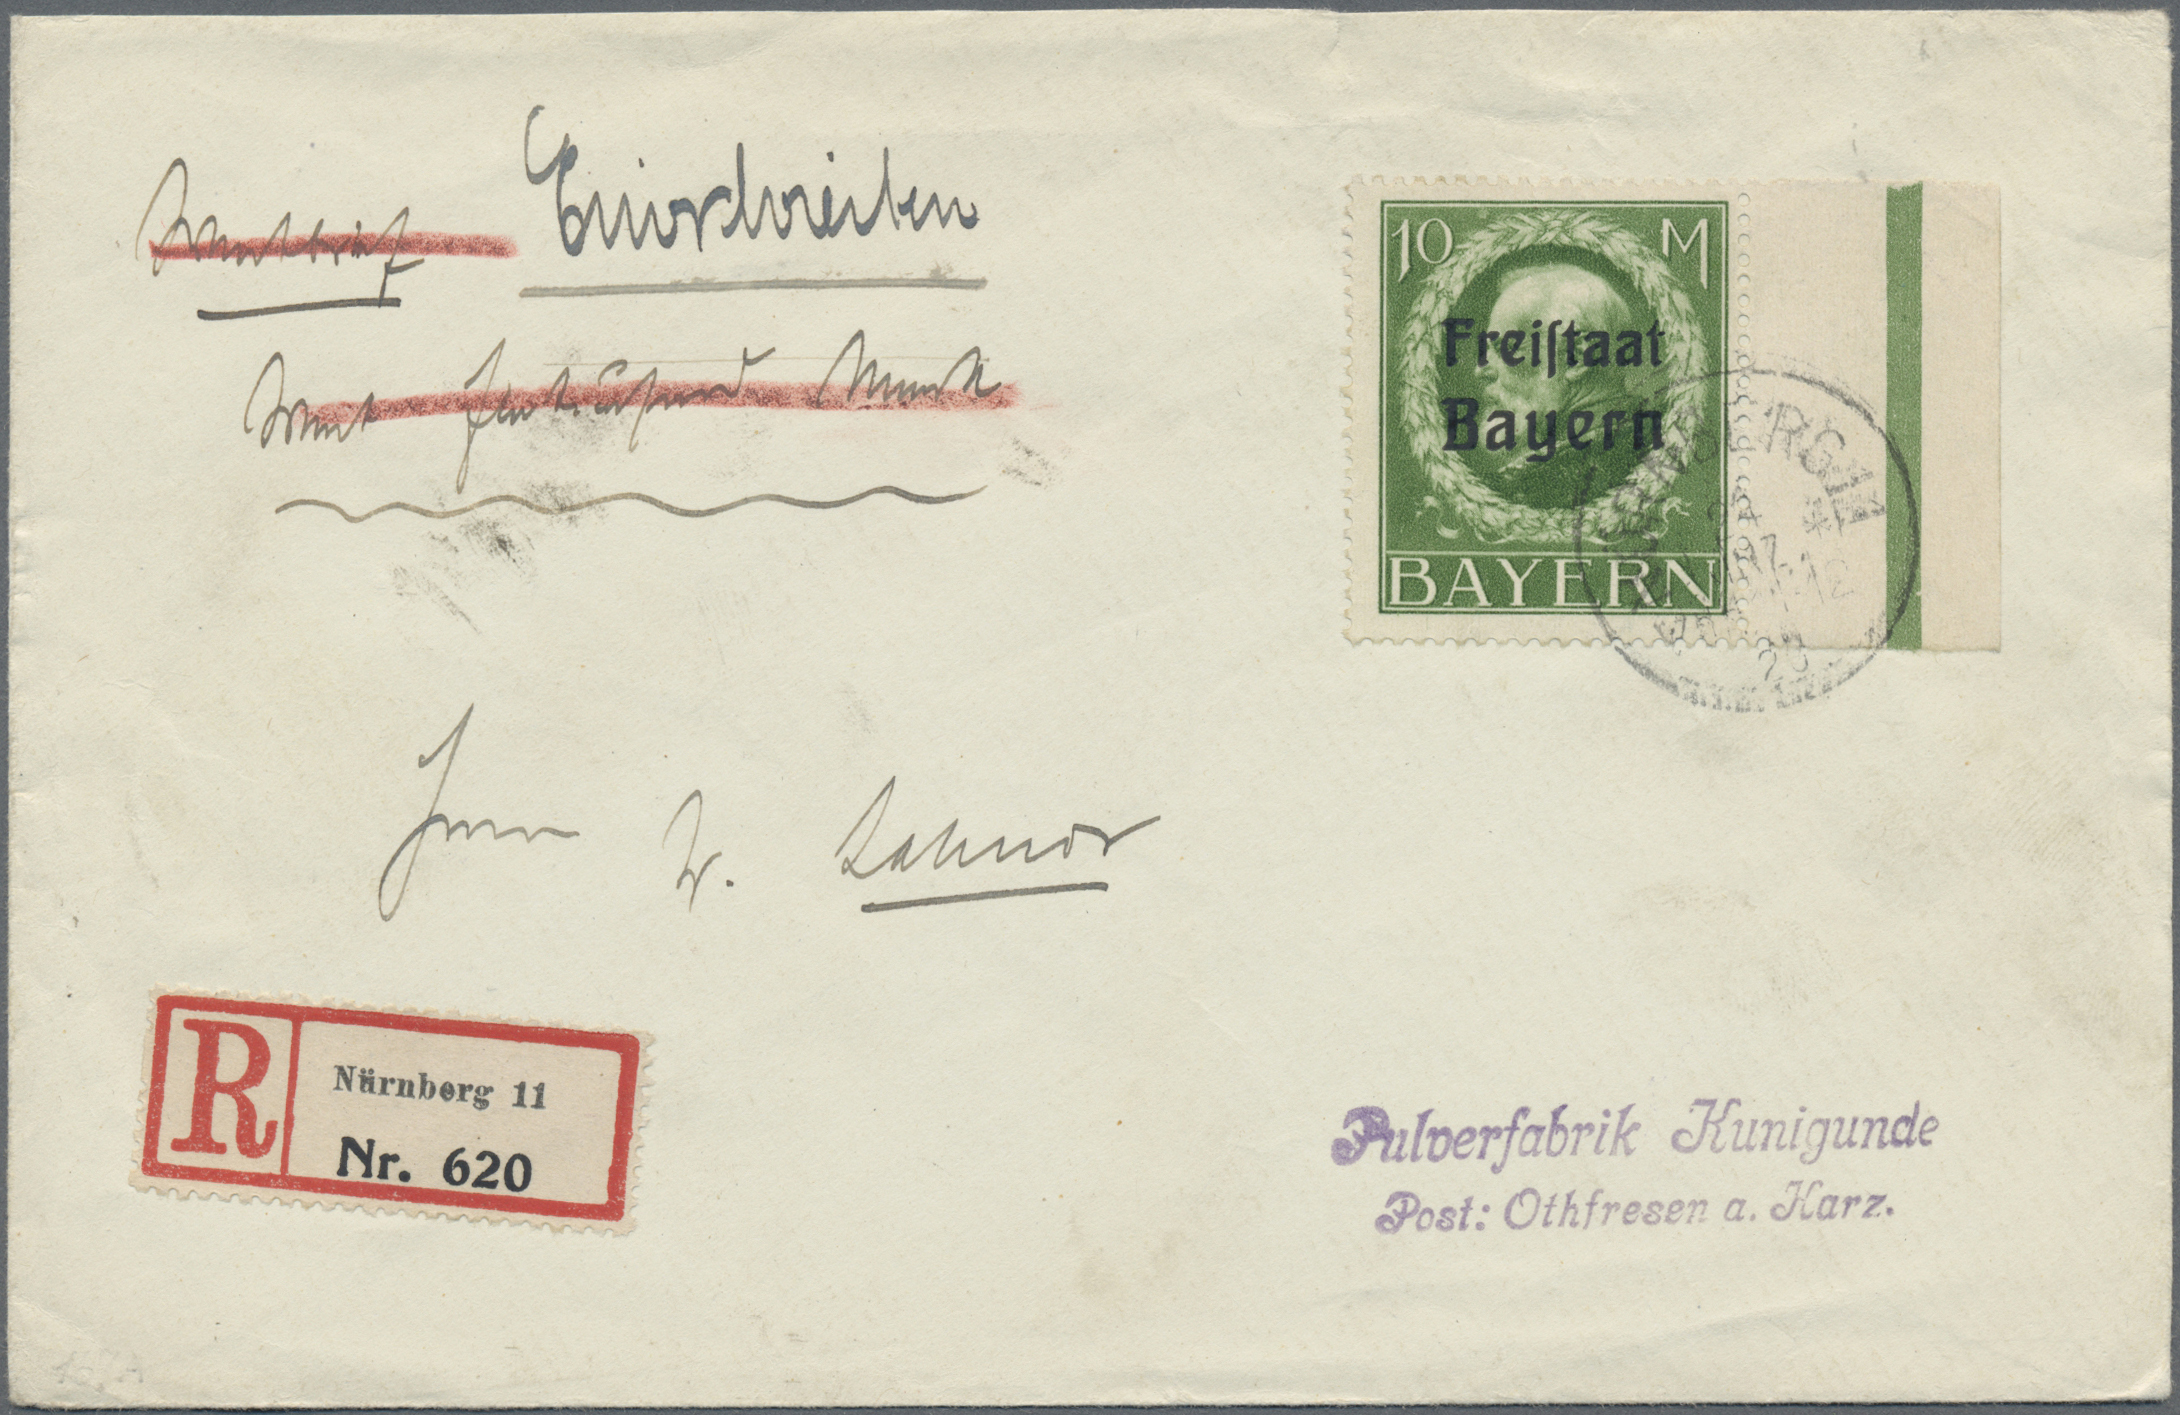 Lot 36182 - Bayern - Marken und Briefe  -  Auktionshaus Christoph Gärtner GmbH & Co. KG Sale #44 Collections Germany